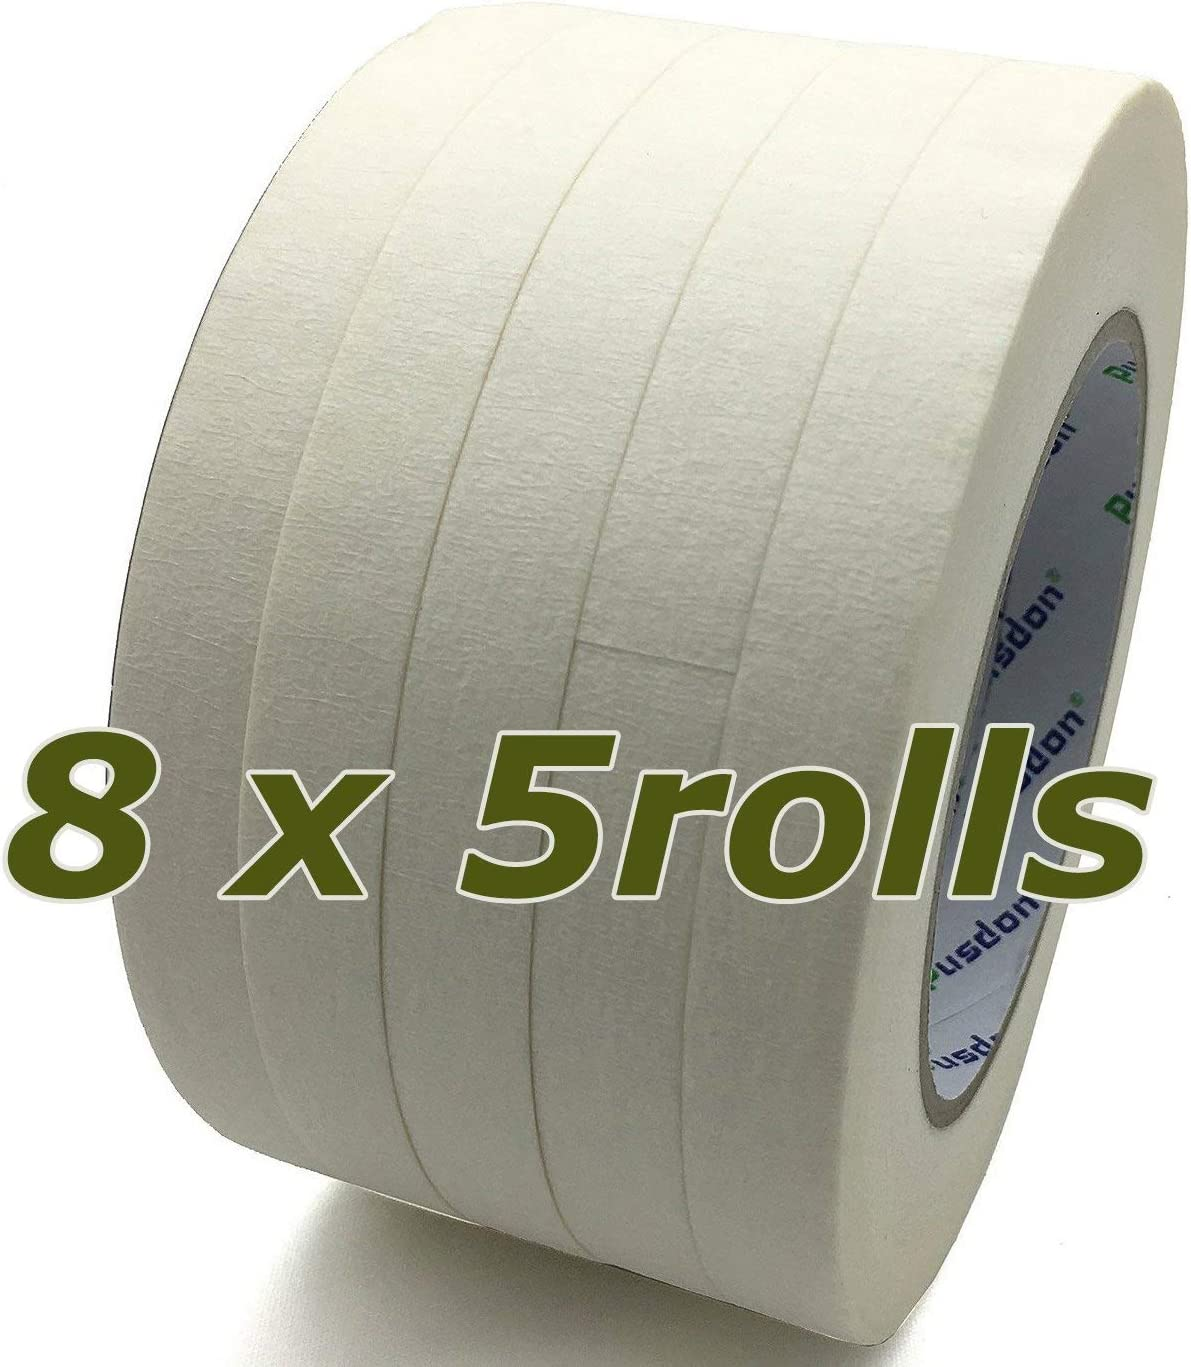 Pusdon Recommended White Masking Tape 40 Rolls 8 1 Pack x Each Roll 2-Inch Albuquerque Mall